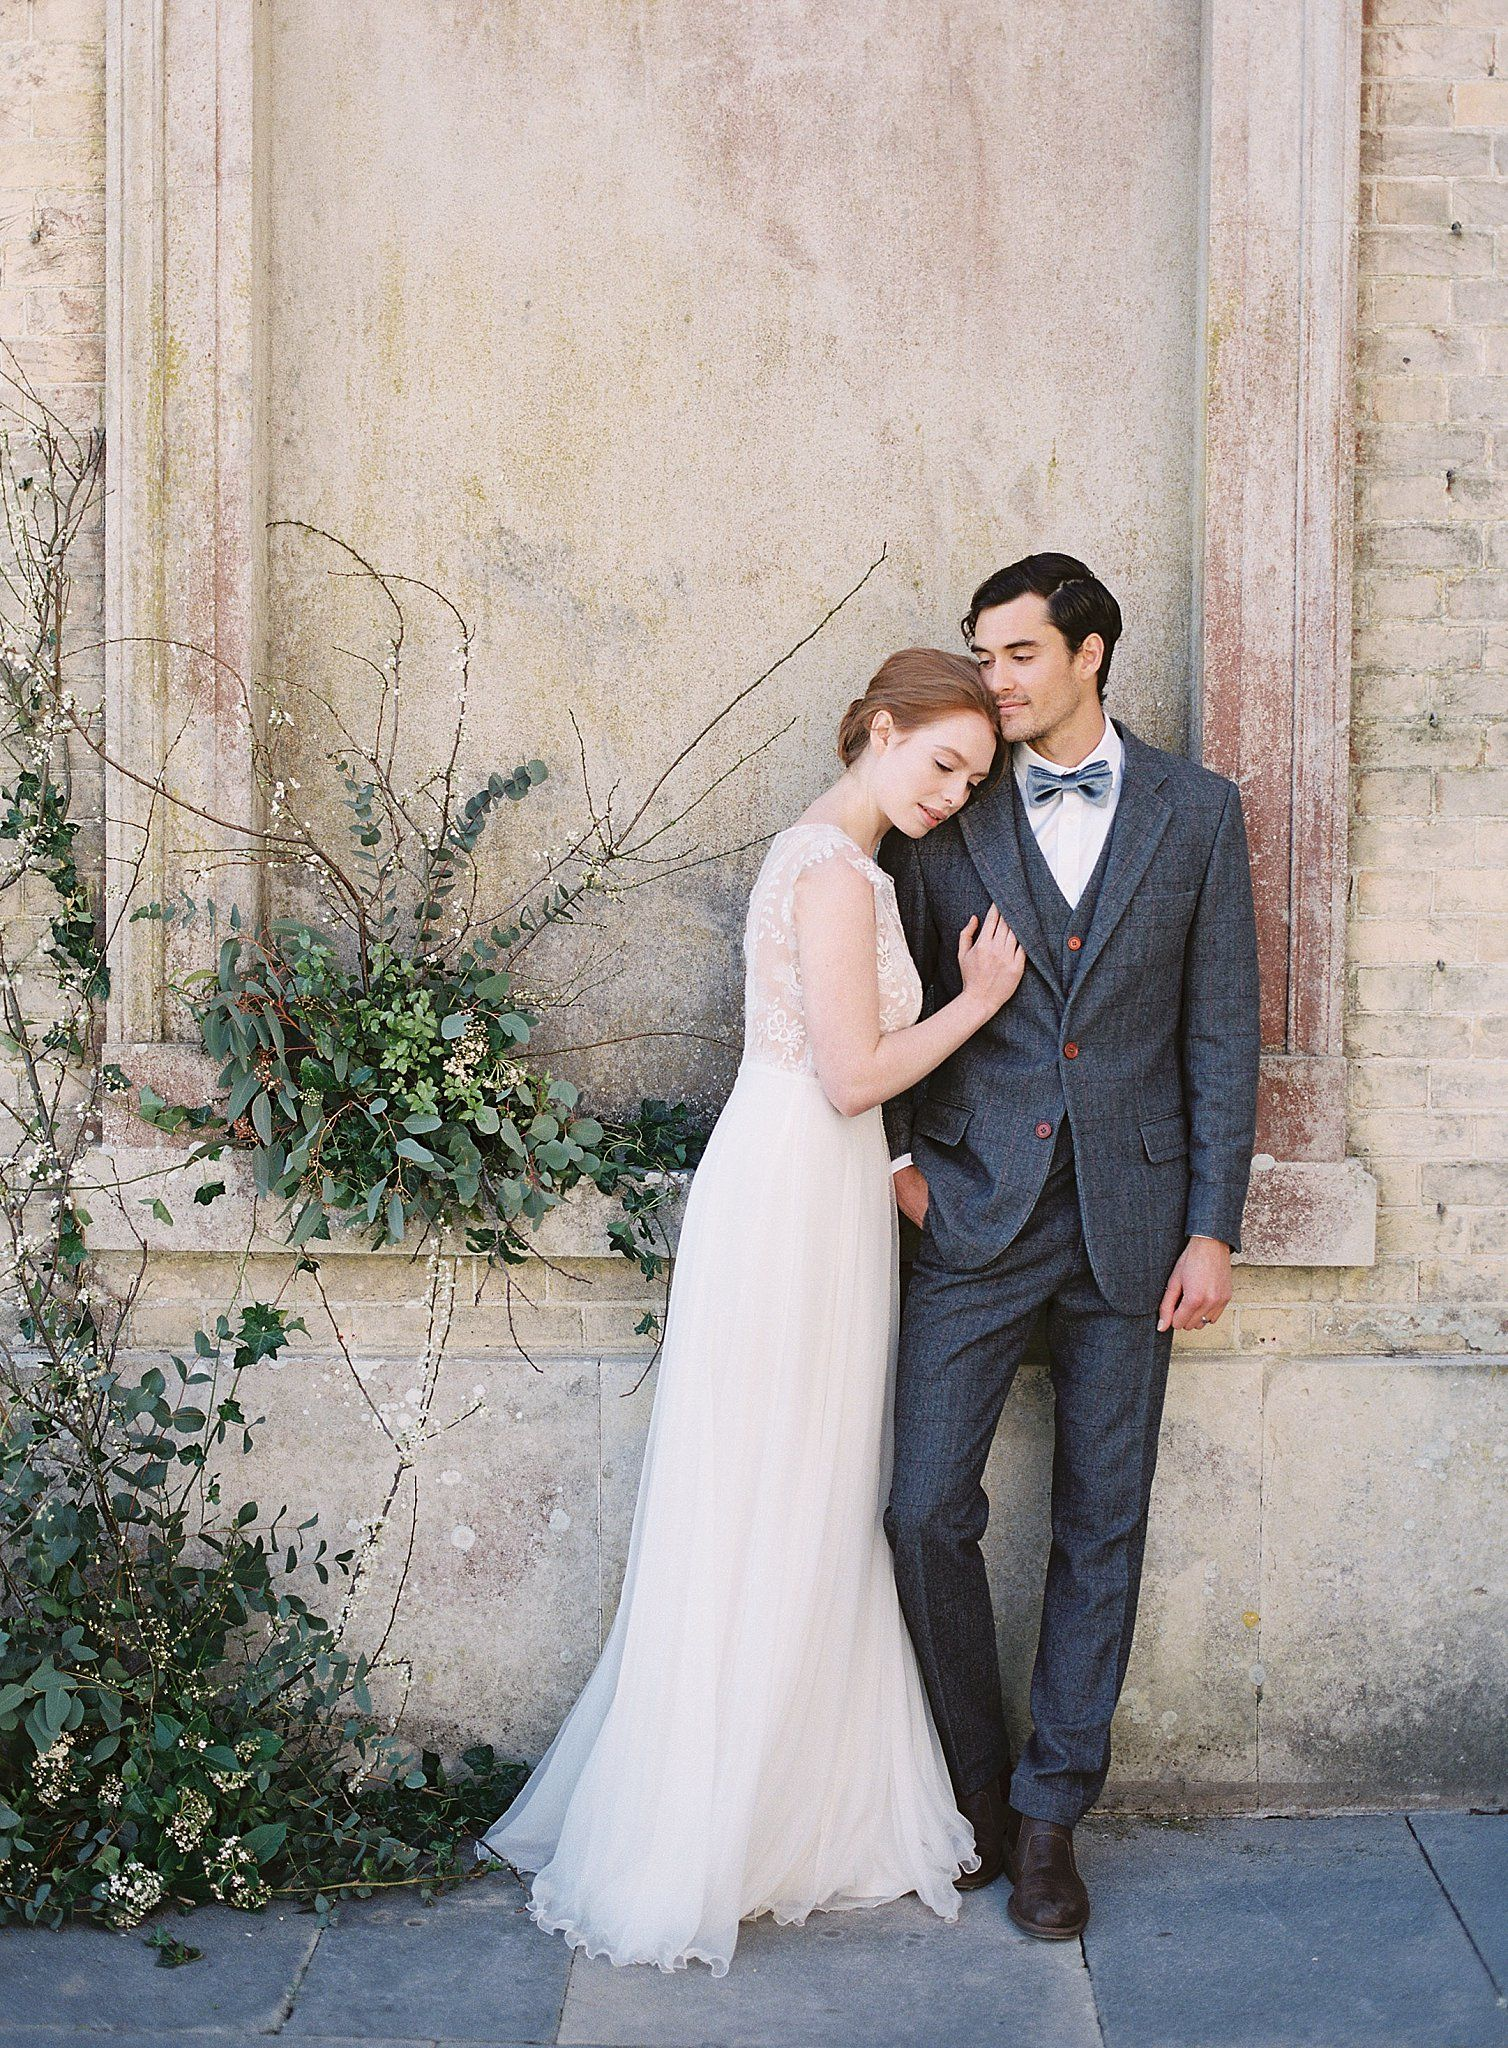 Fine Art Bride And Groom At Hampshire Historical Wedding Venue Pinterest Welcome In 2020 Wedding Historic Wedding Venue Timeless Wedding Dress